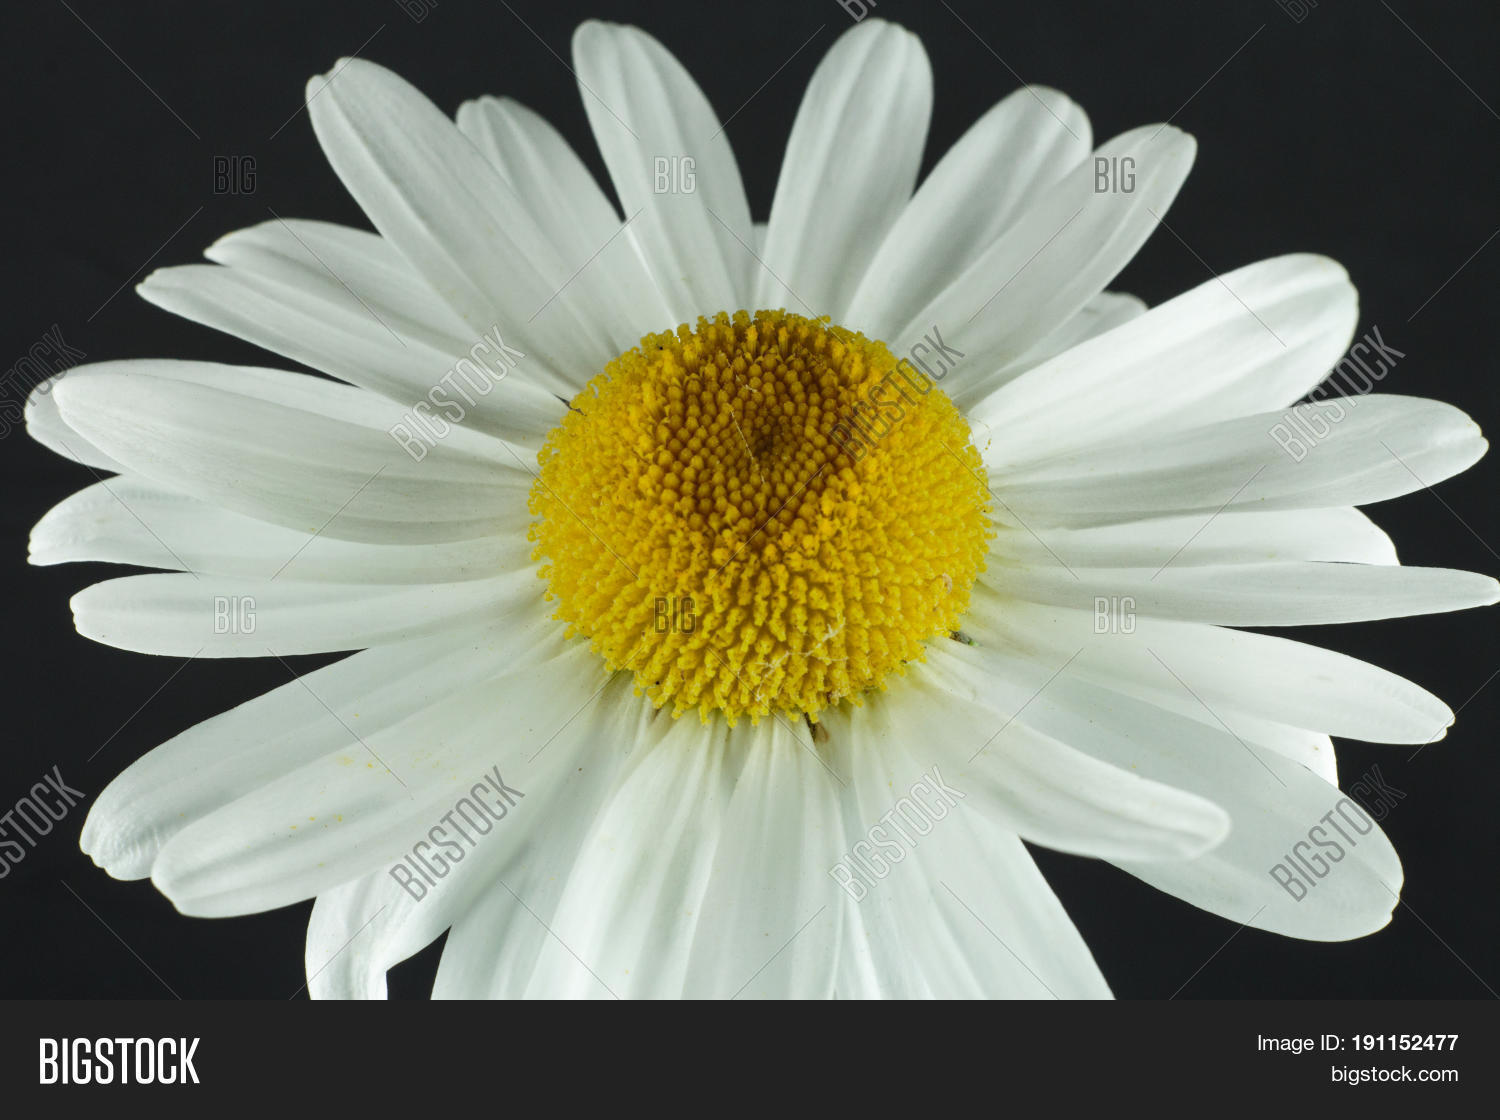 Chamomile camomile image photo free trial bigstock chamomile or camomile is the common name for several daisy like plants of the family izmirmasajfo